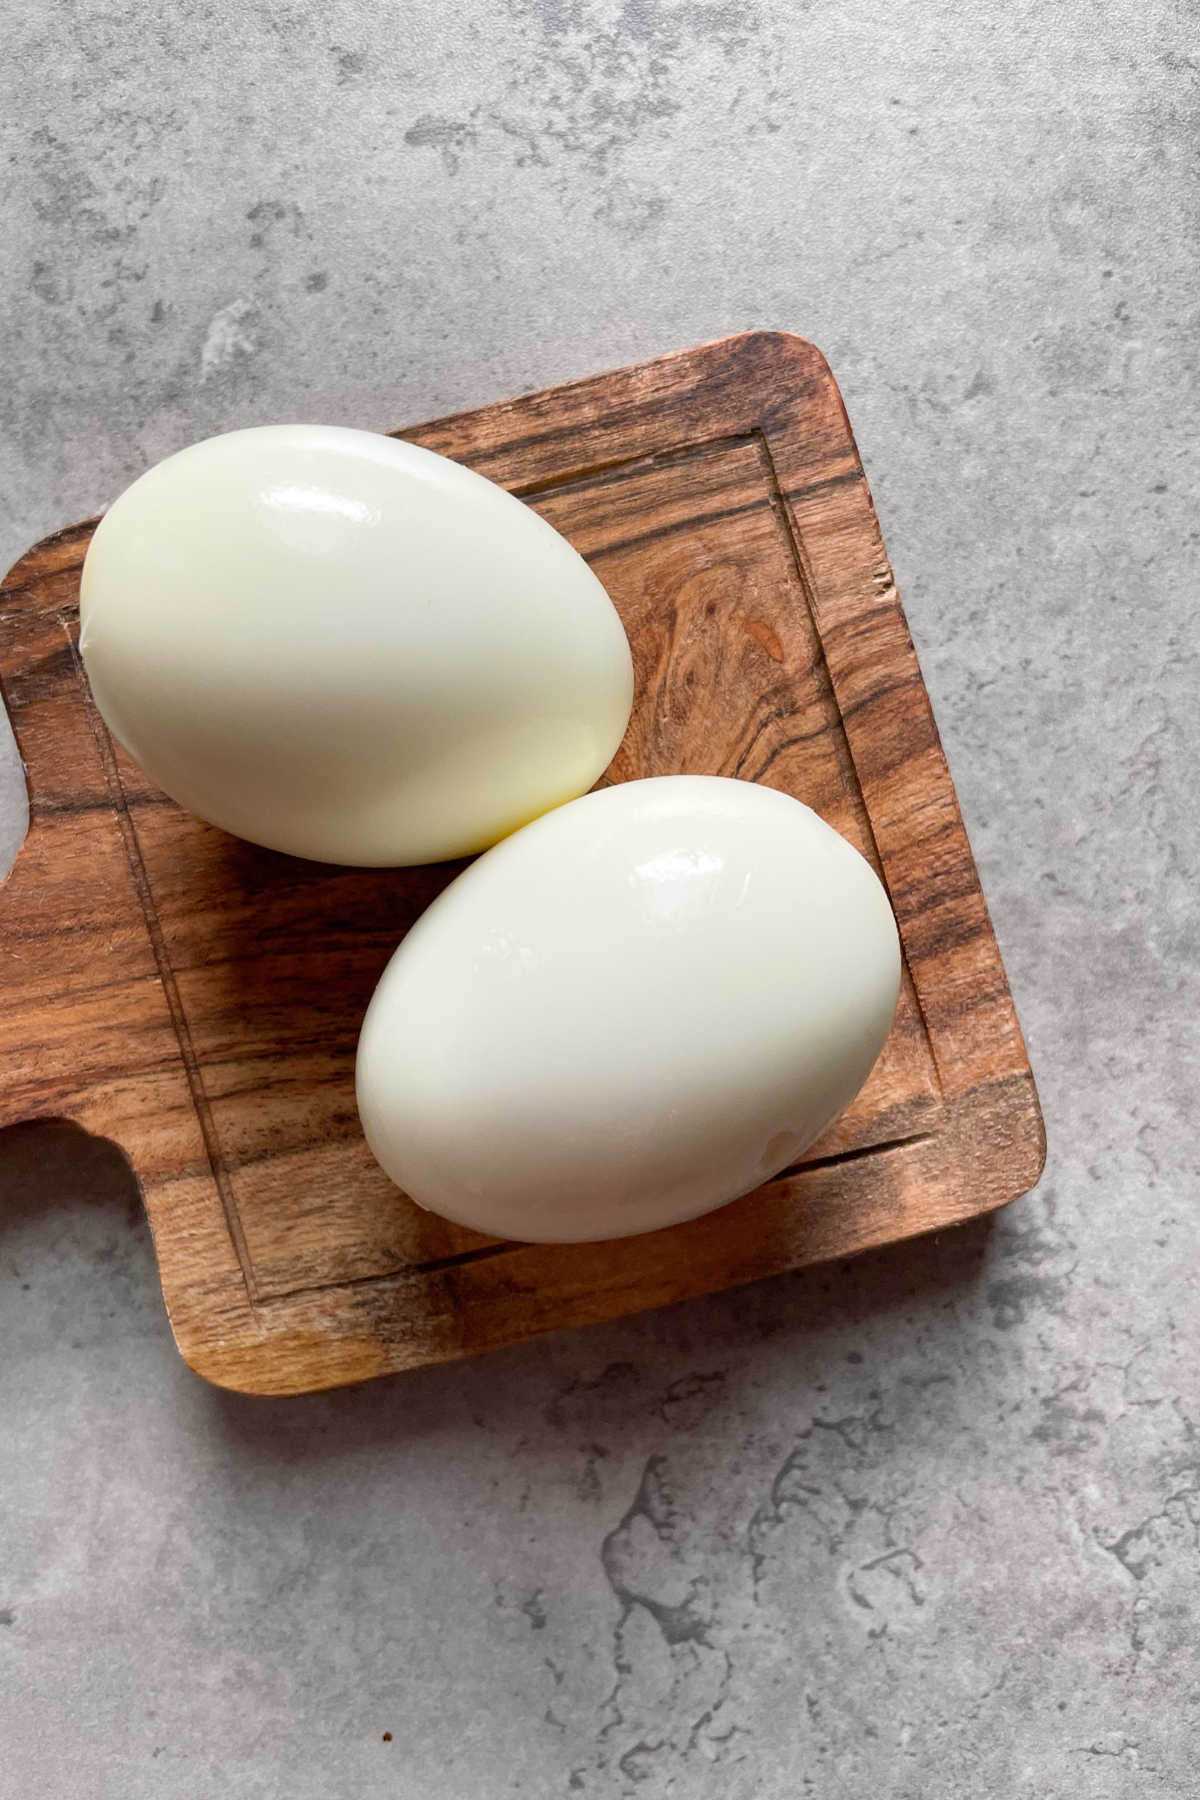 2 peeled eggs on wooden board